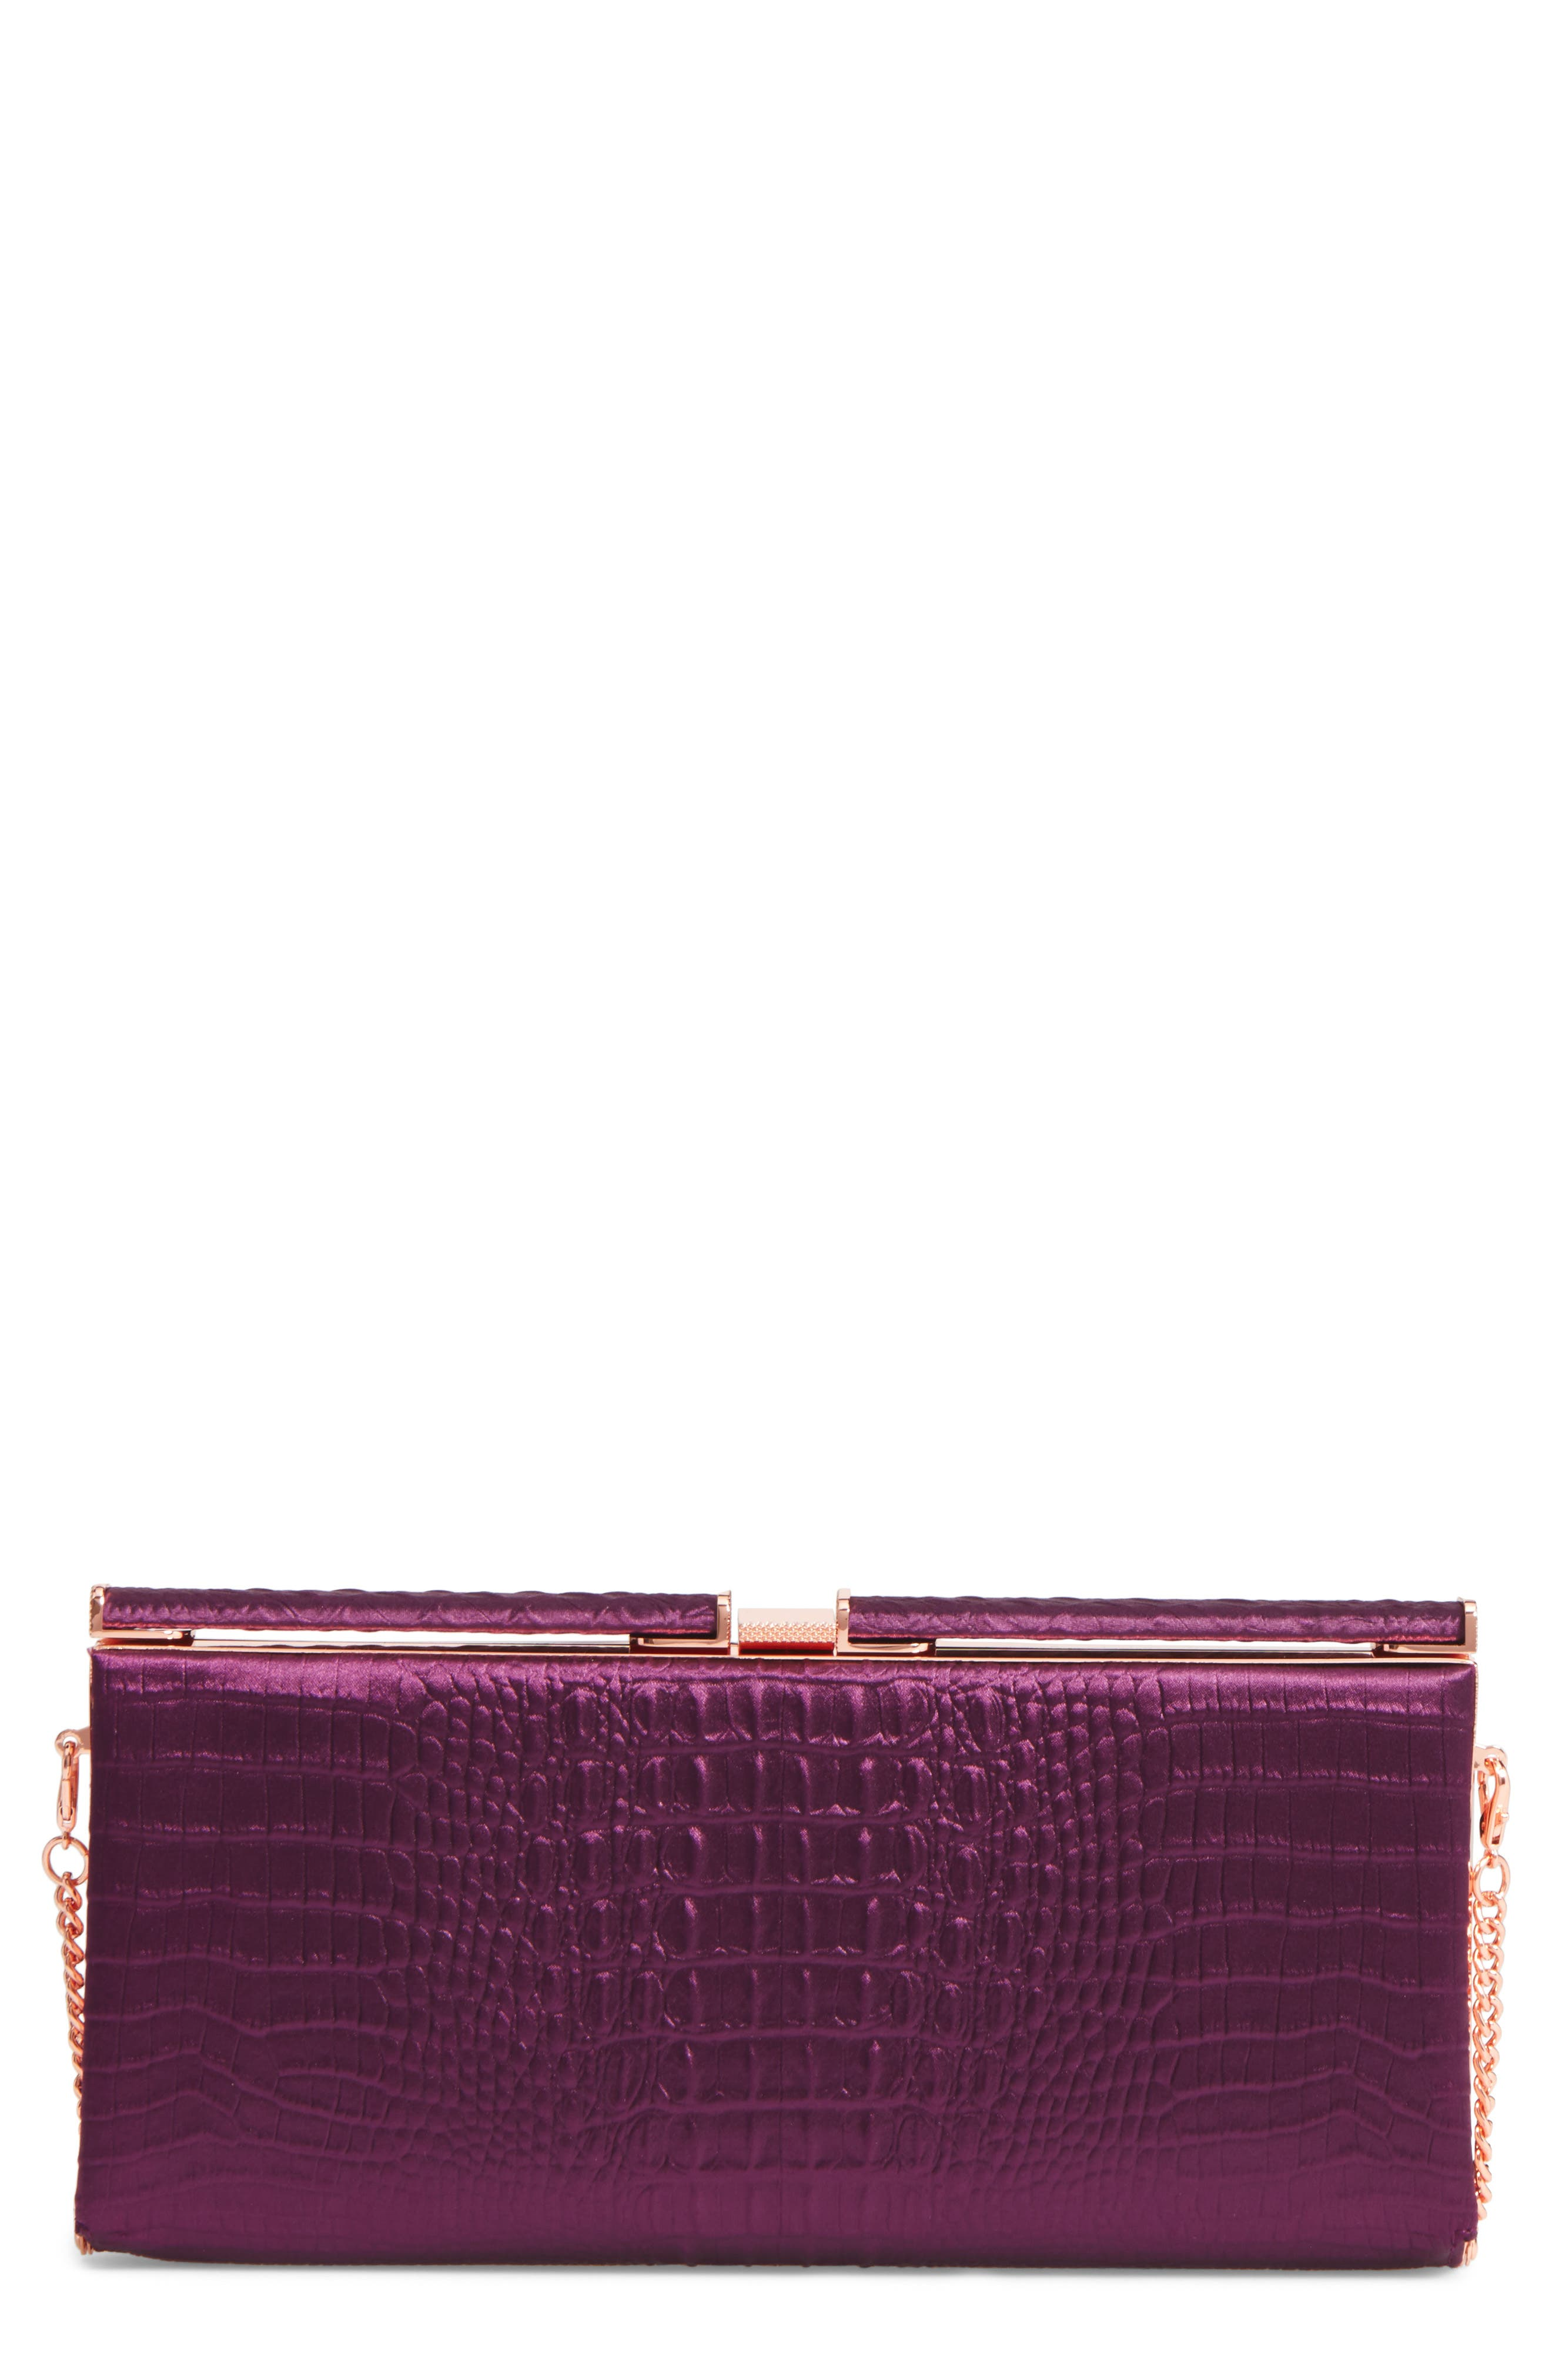 Alternate Image 1 Selected - Ted Baker Darciee Embossed Frame Clutch